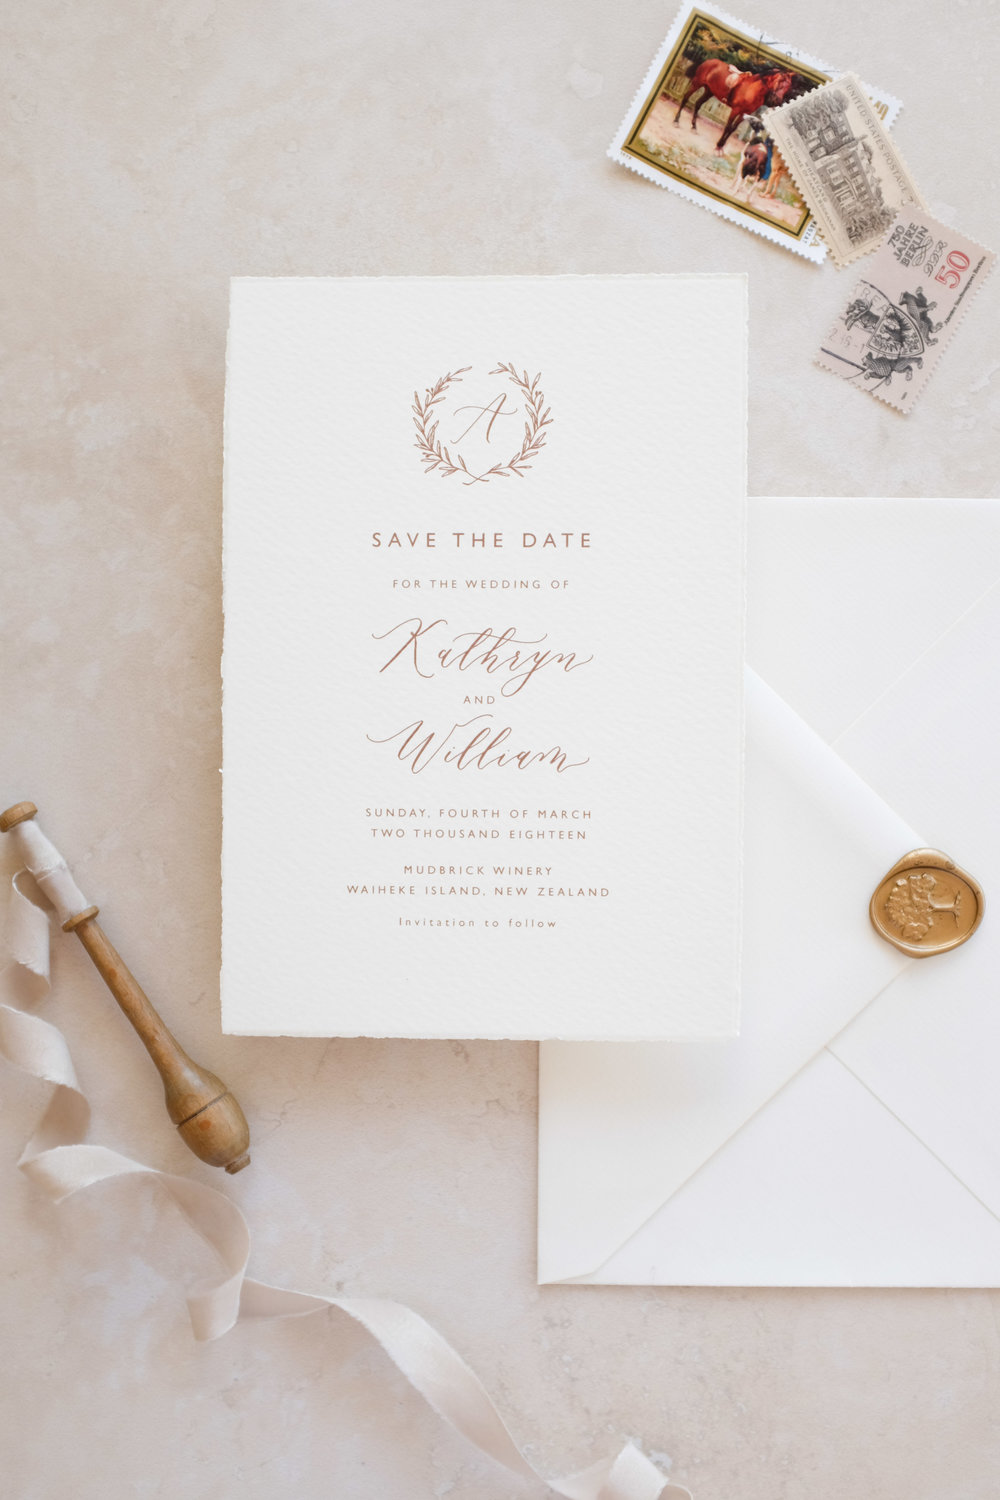 Luminous Save The Date Suite  From $460.00 nzd